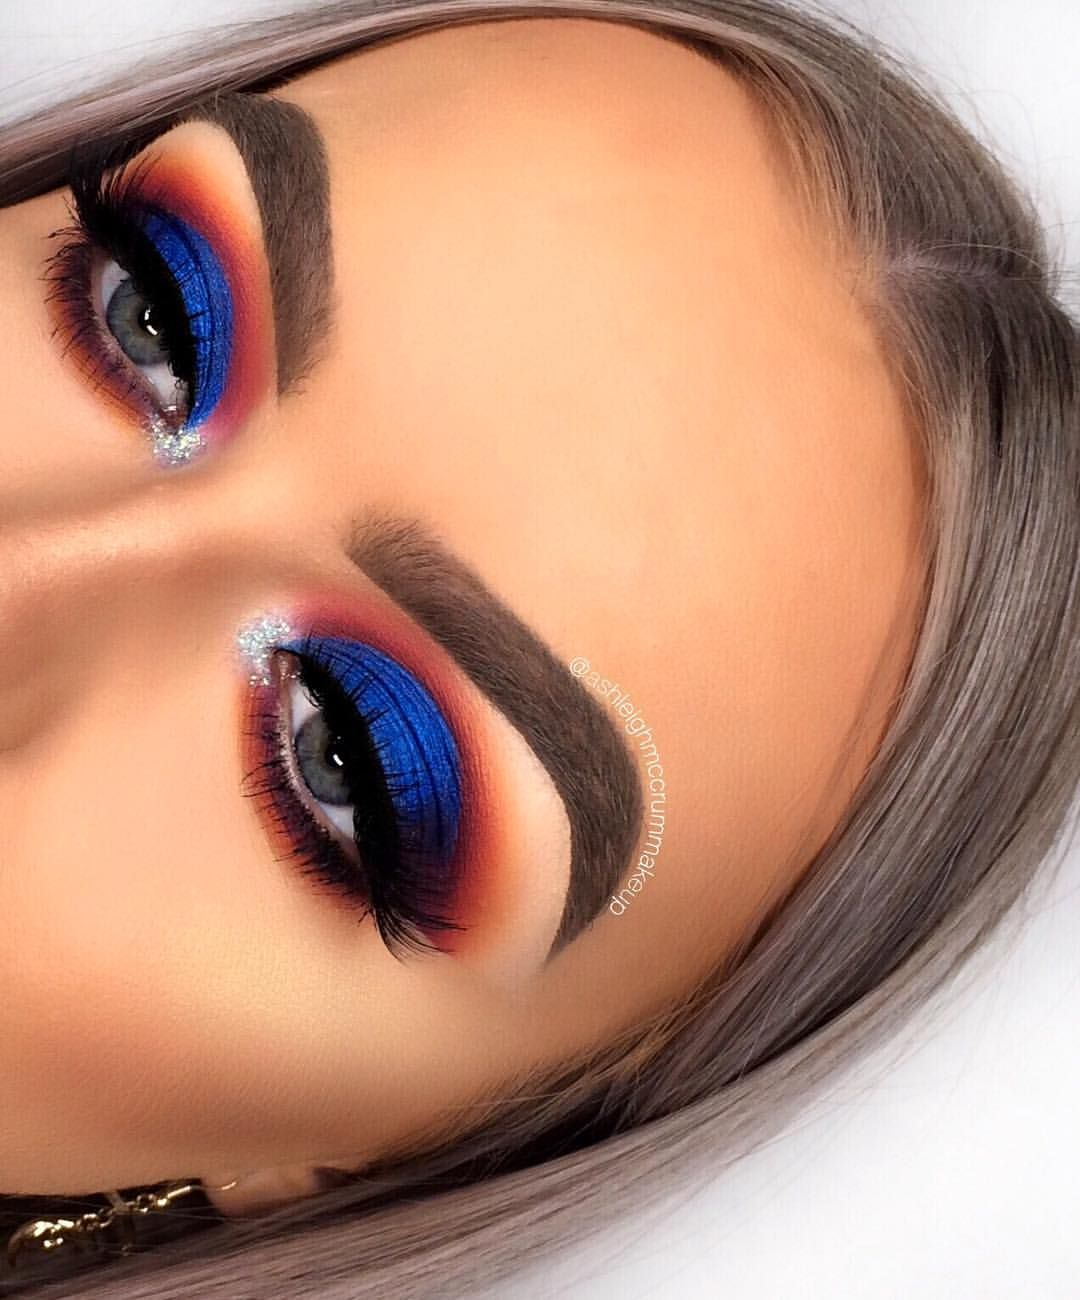 Brand New Look Using Some Gorgeous Shades From Staceymariemua